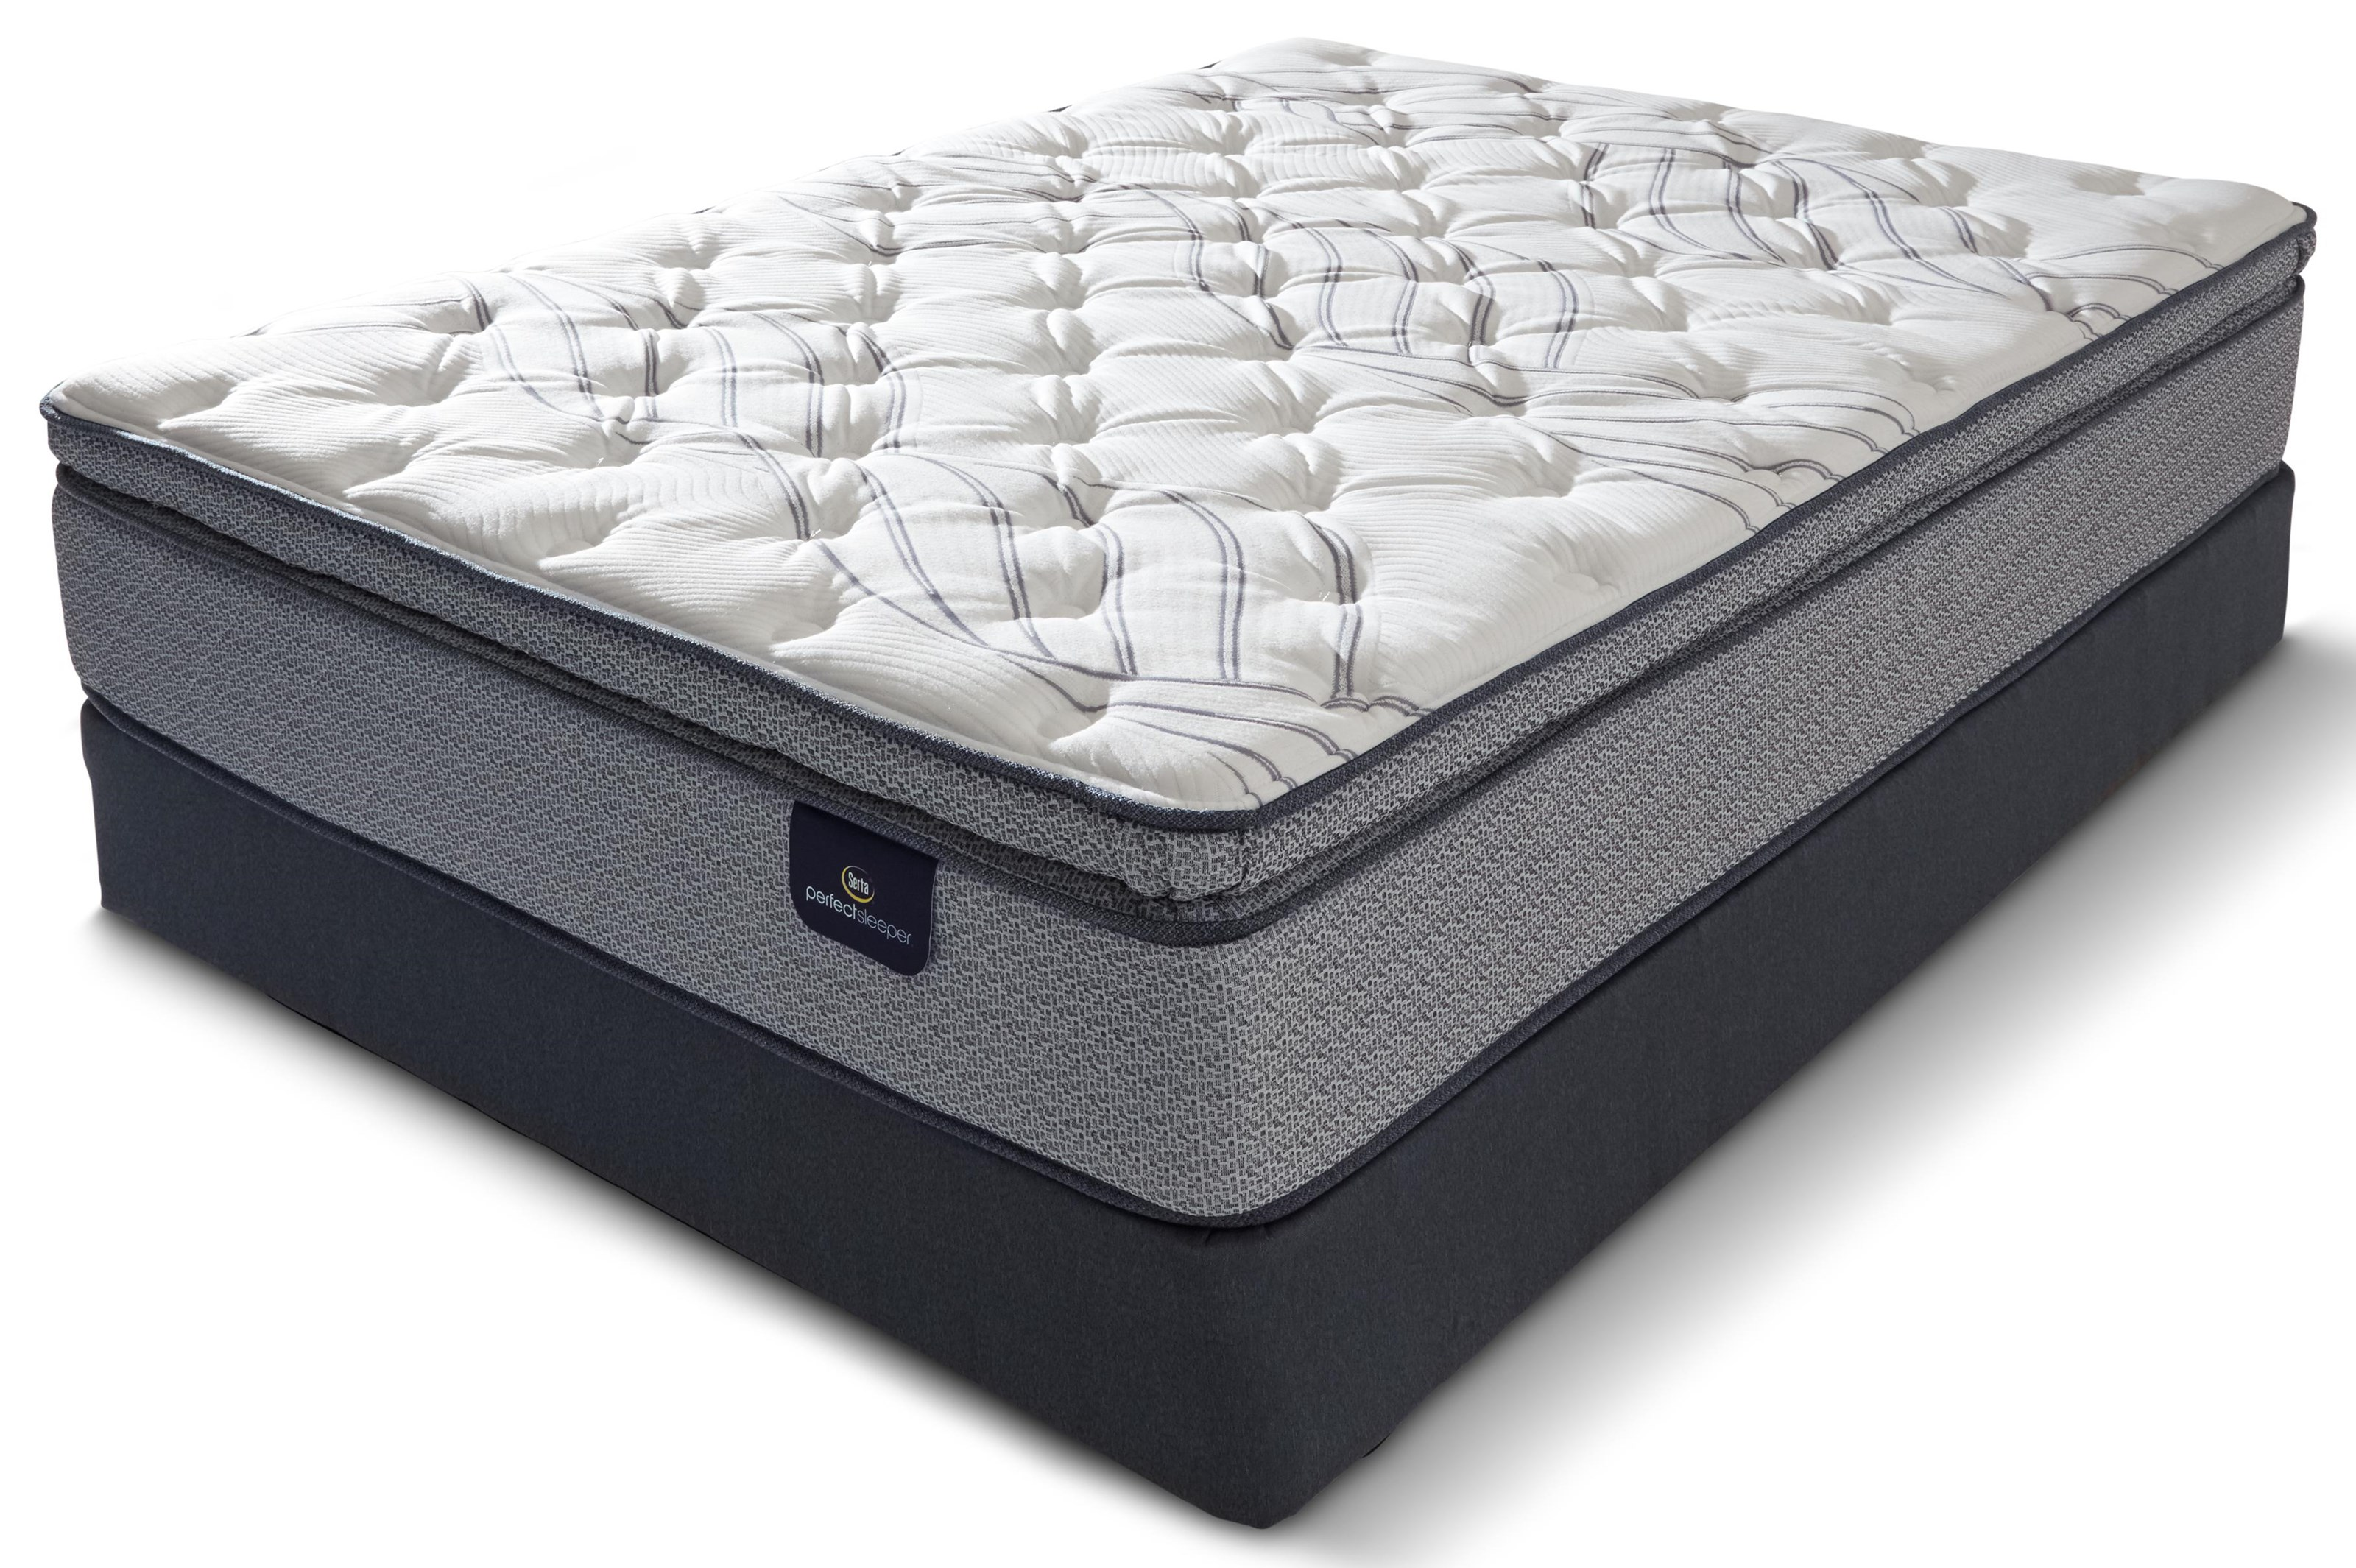 KG AIDEN PILLOW TOP MATTRESS